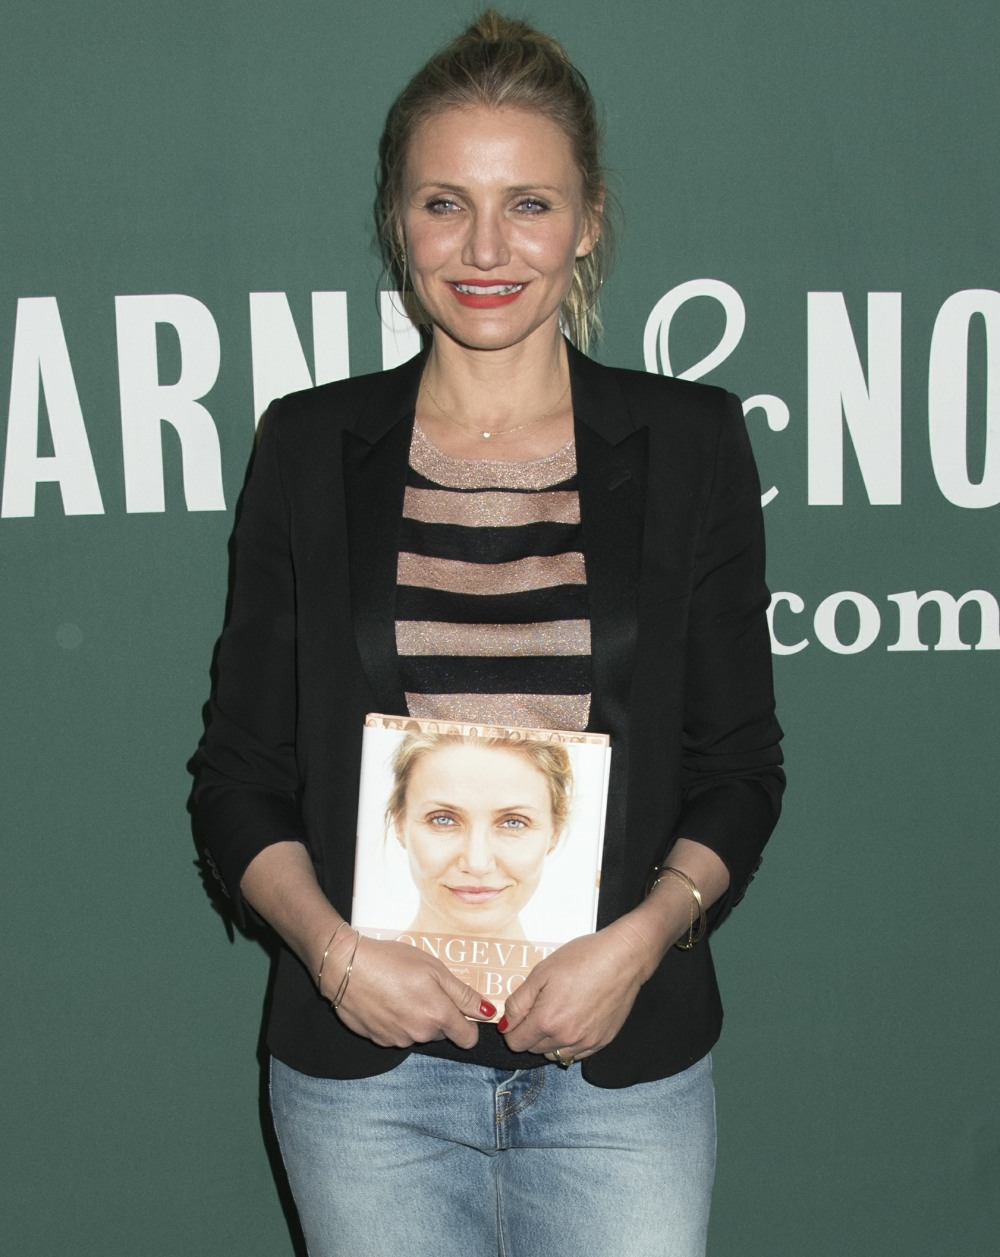 Cameron Diaz attends her book signing for 'The Longevity Book: The Science of Aging, the Biology of Strength, and the Privilege of Time'